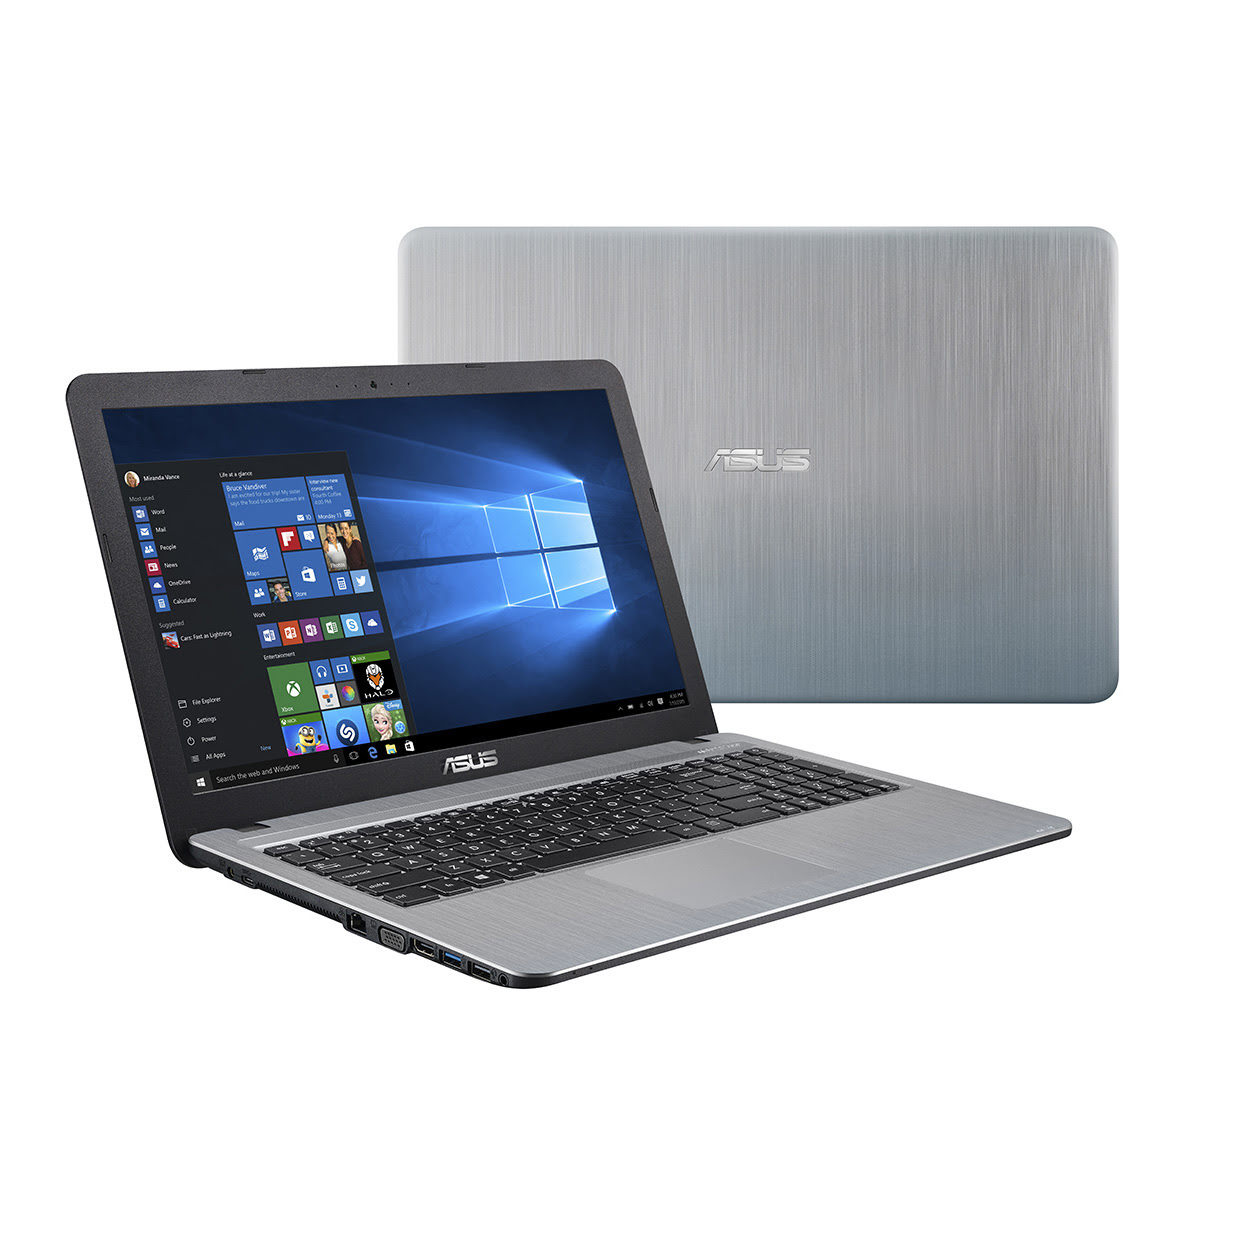 Asus 90NB0B03-M25310 - PC portable Asus - Cybertek.fr - 0